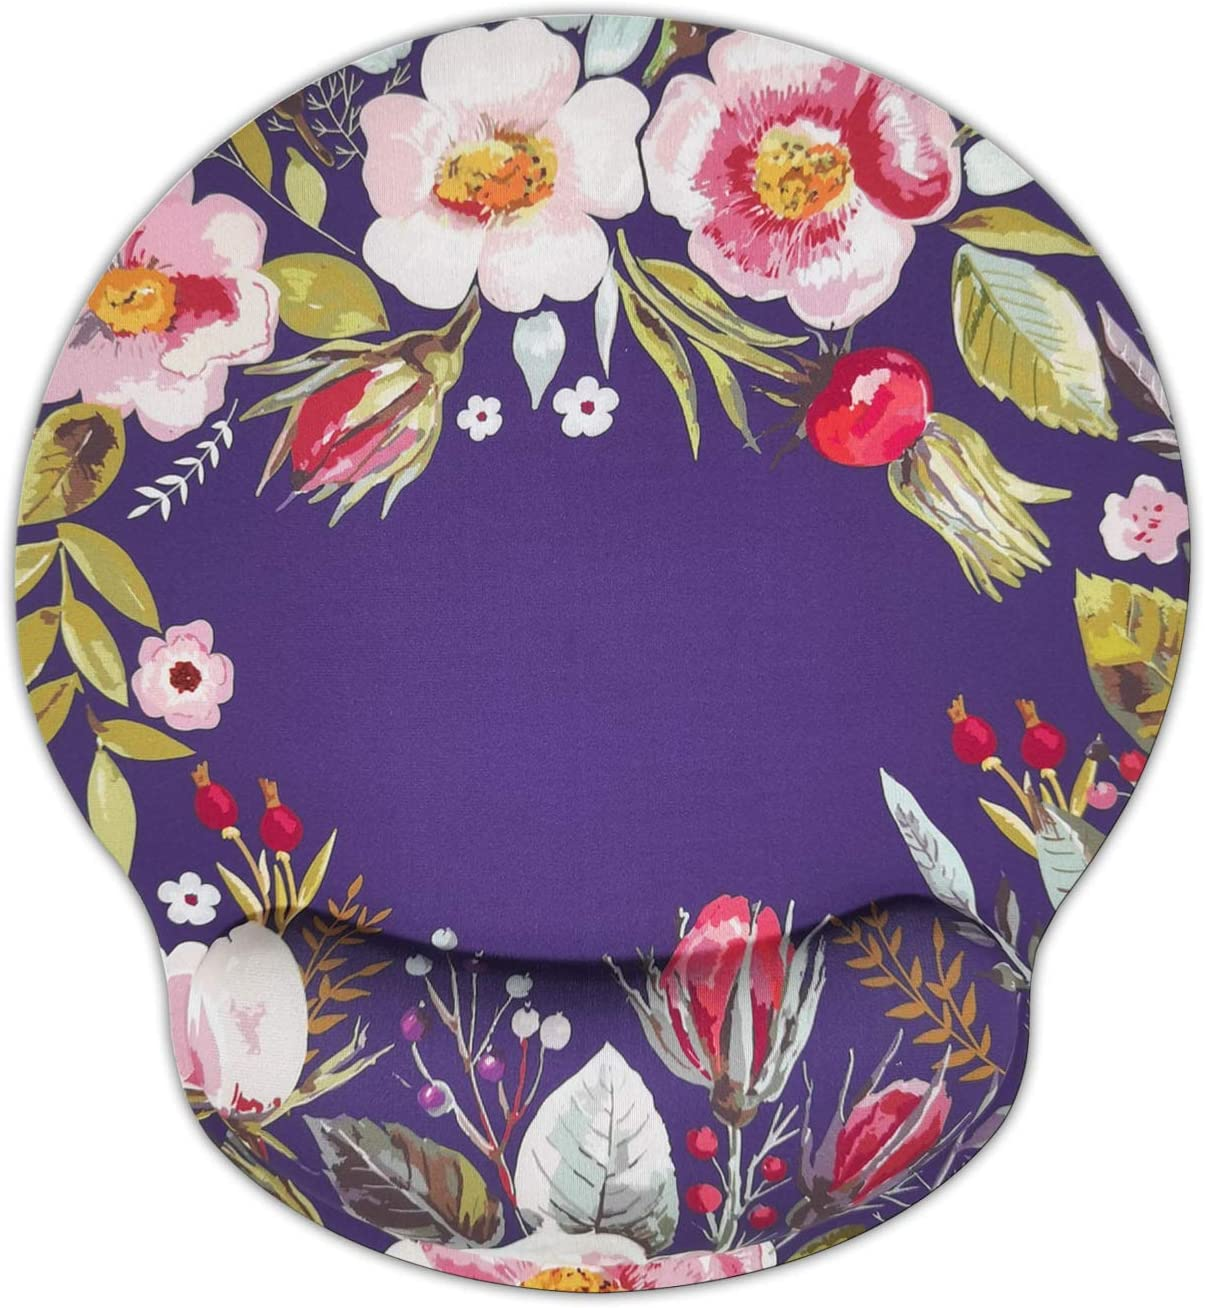 Ergonomic Mouse Pad with Wrist Support,Dooke Cute Wrist Pad with Non-Slip Rubber Base for Computer, Laptop, Home Office Gaming, Working, Easy Typing & Pain Relief Pink Flower